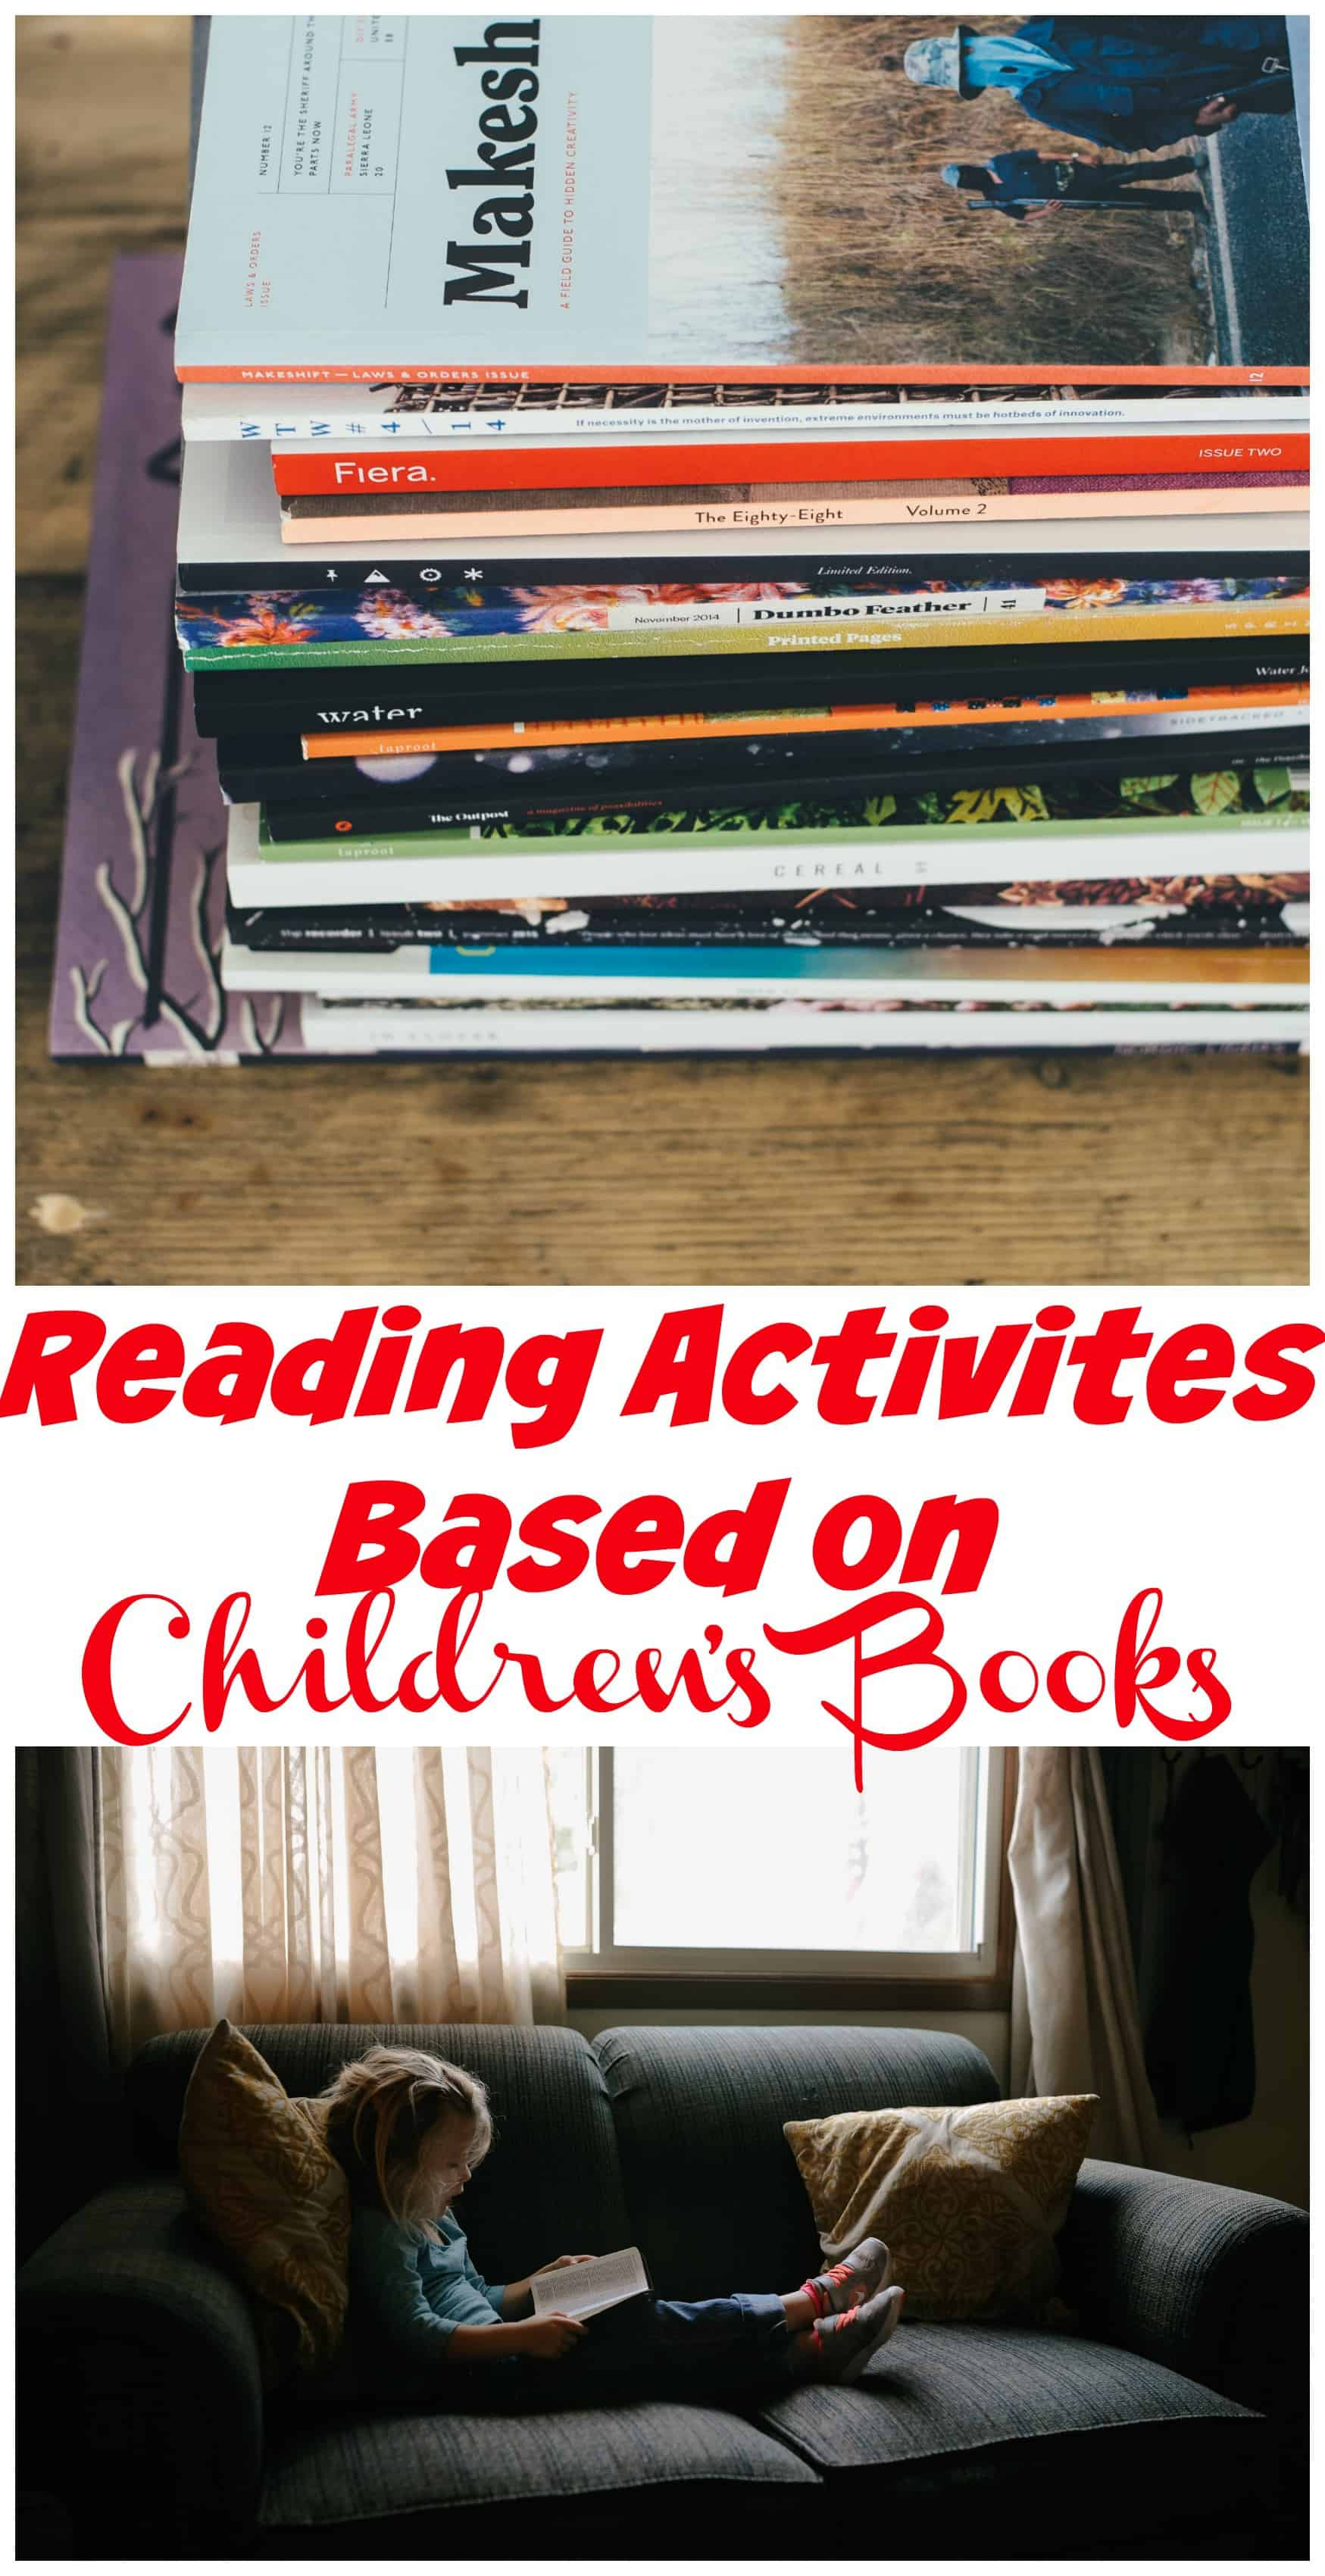 Are you looking for activitiesbased on children's books? 7Sister's has created packets that allow children to dive deeper into some of our favorite books.